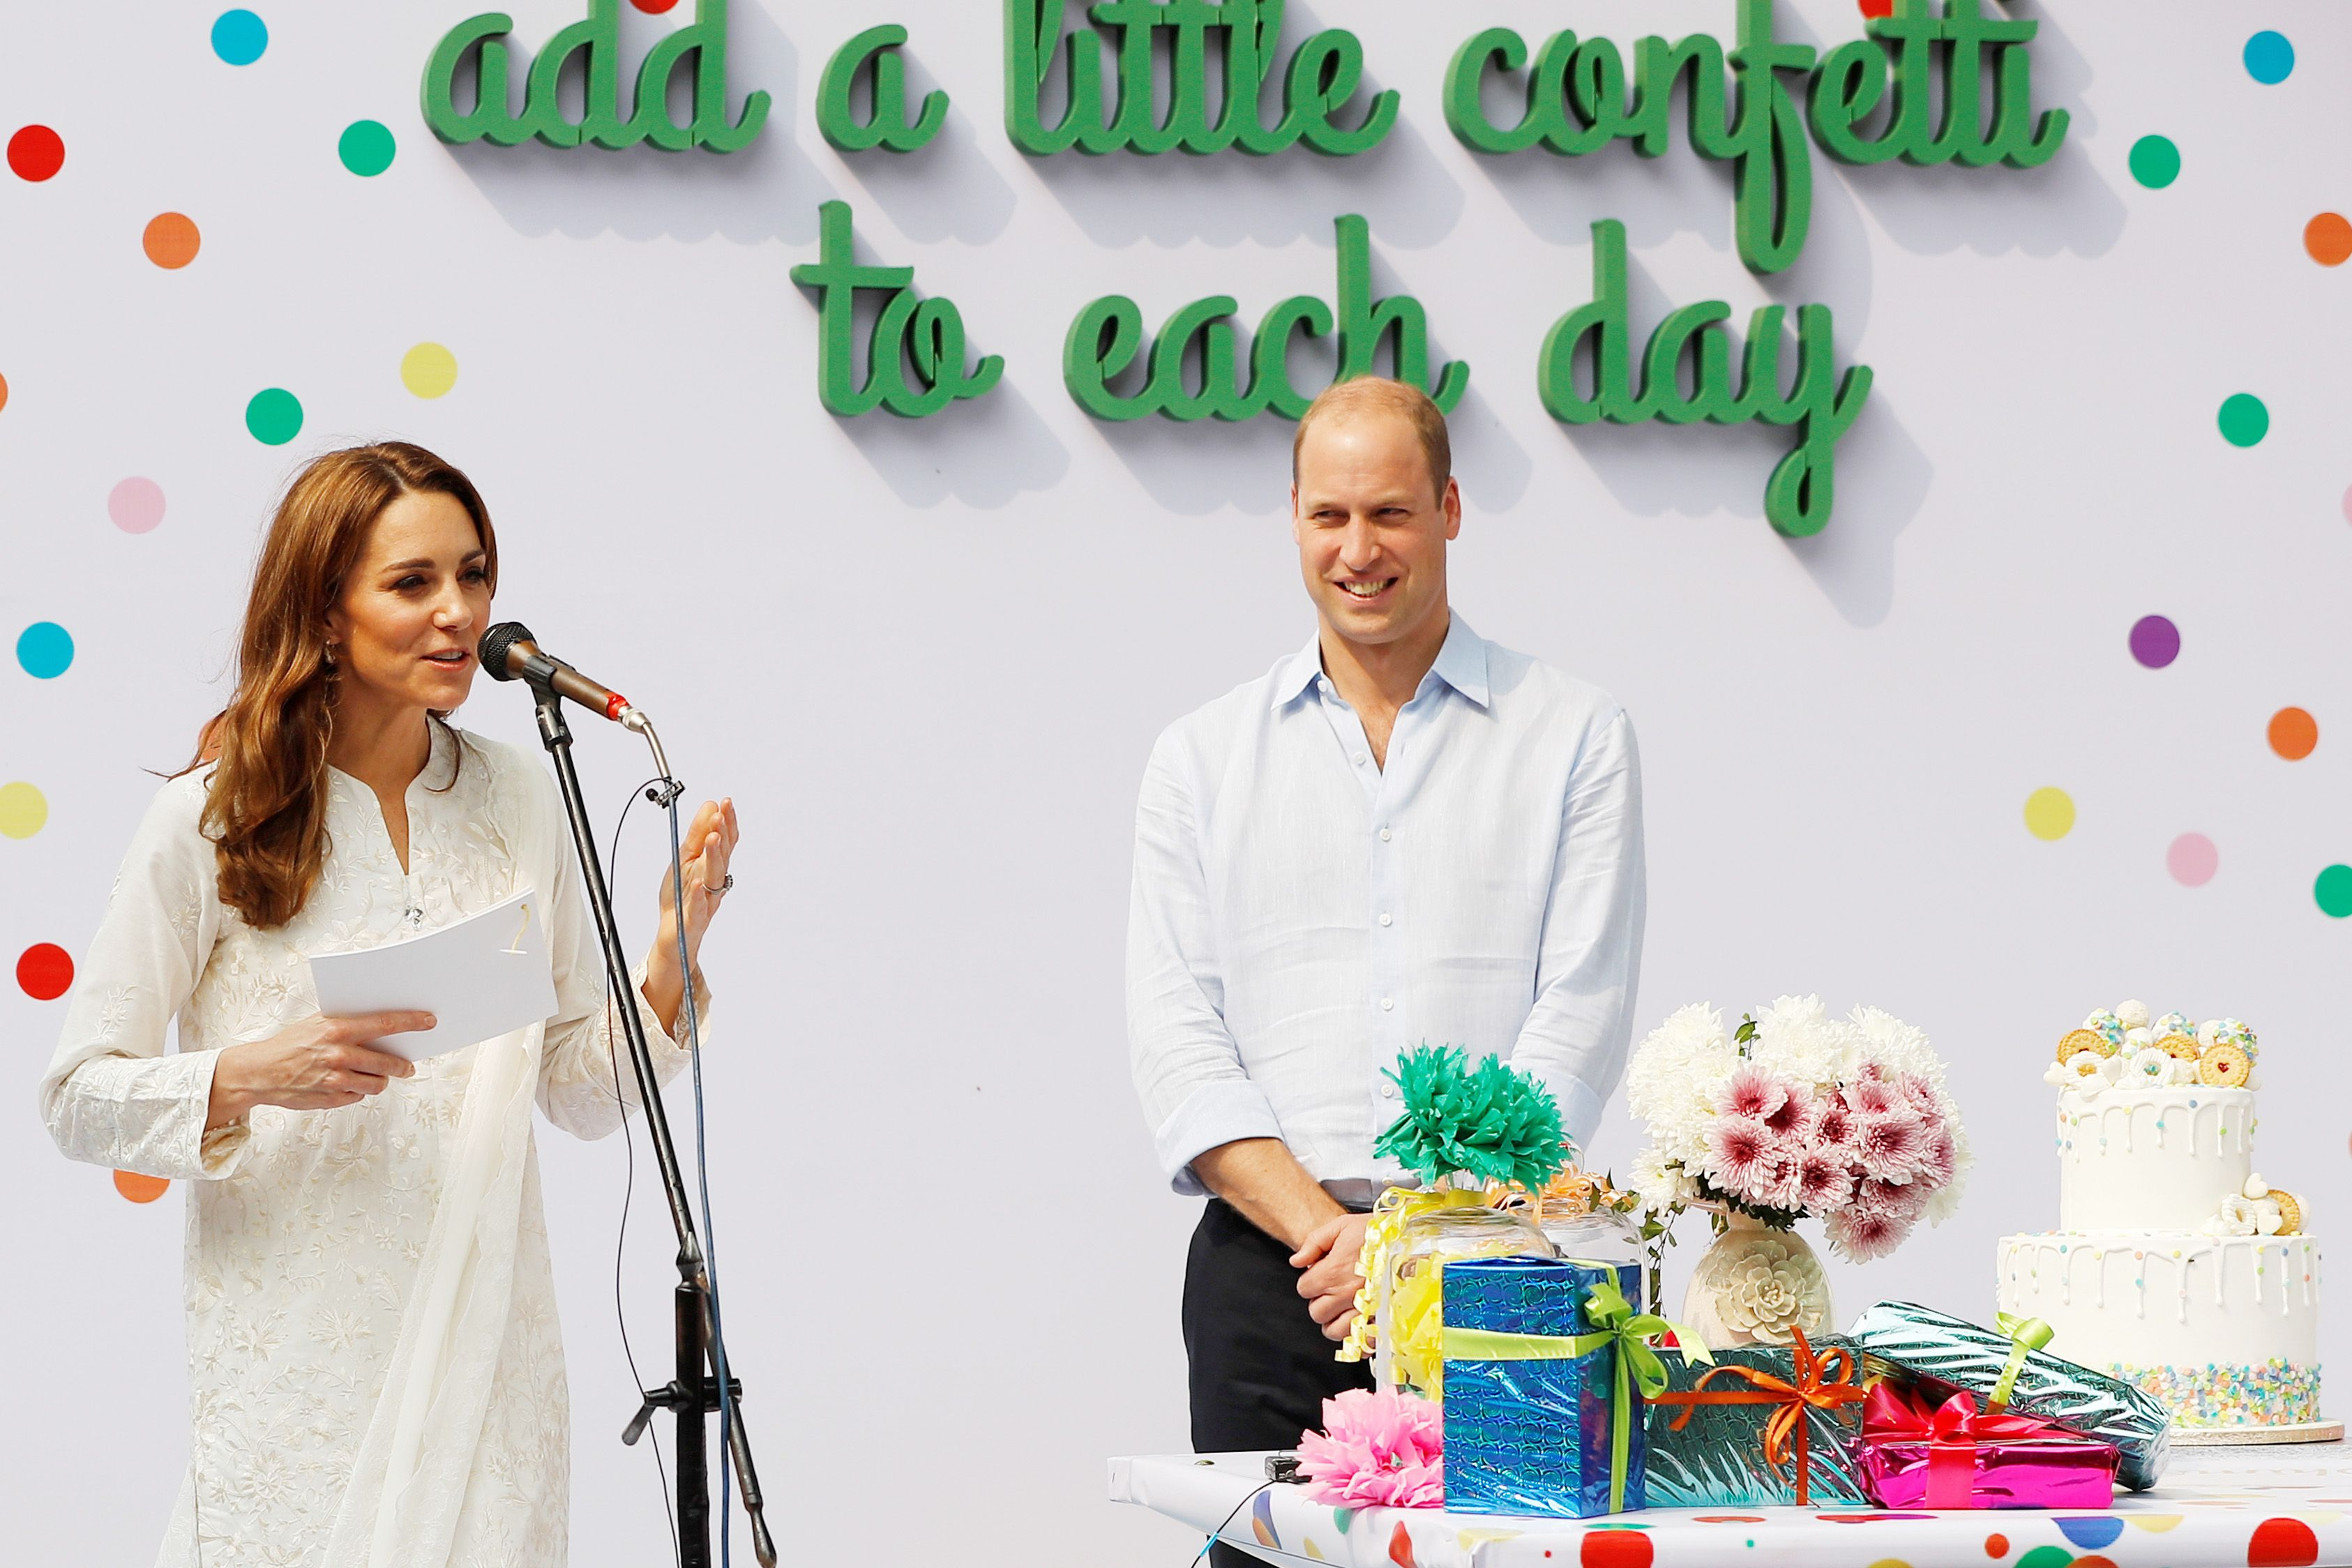 """Kate Middleton Delivers a Speech in Pakistan: """"It Takes a Village to Raise a Child"""""""